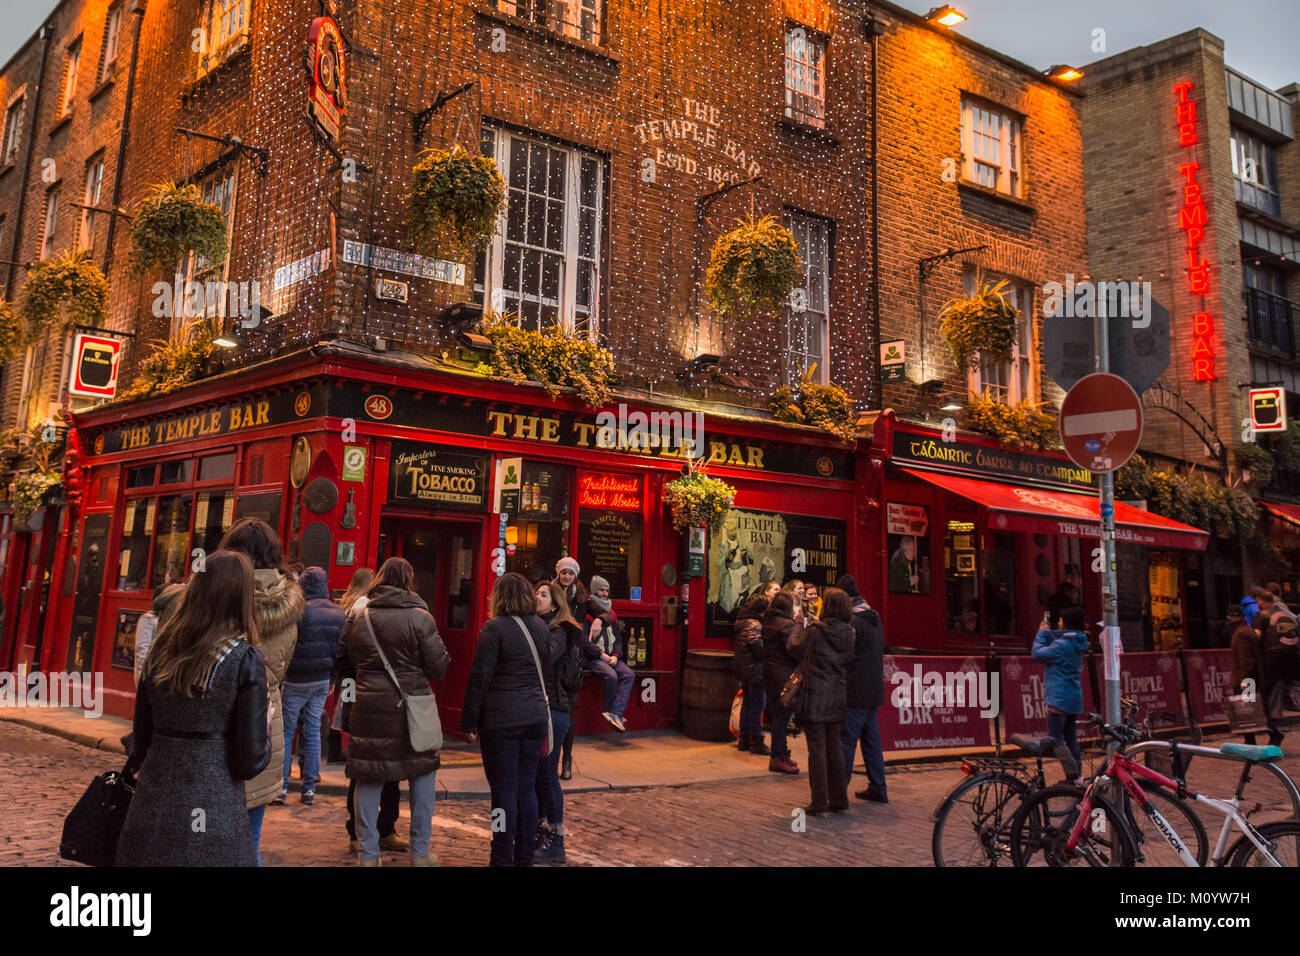 Temple Bar, Dublin, Ireland, Europe - early evening - Stock Image